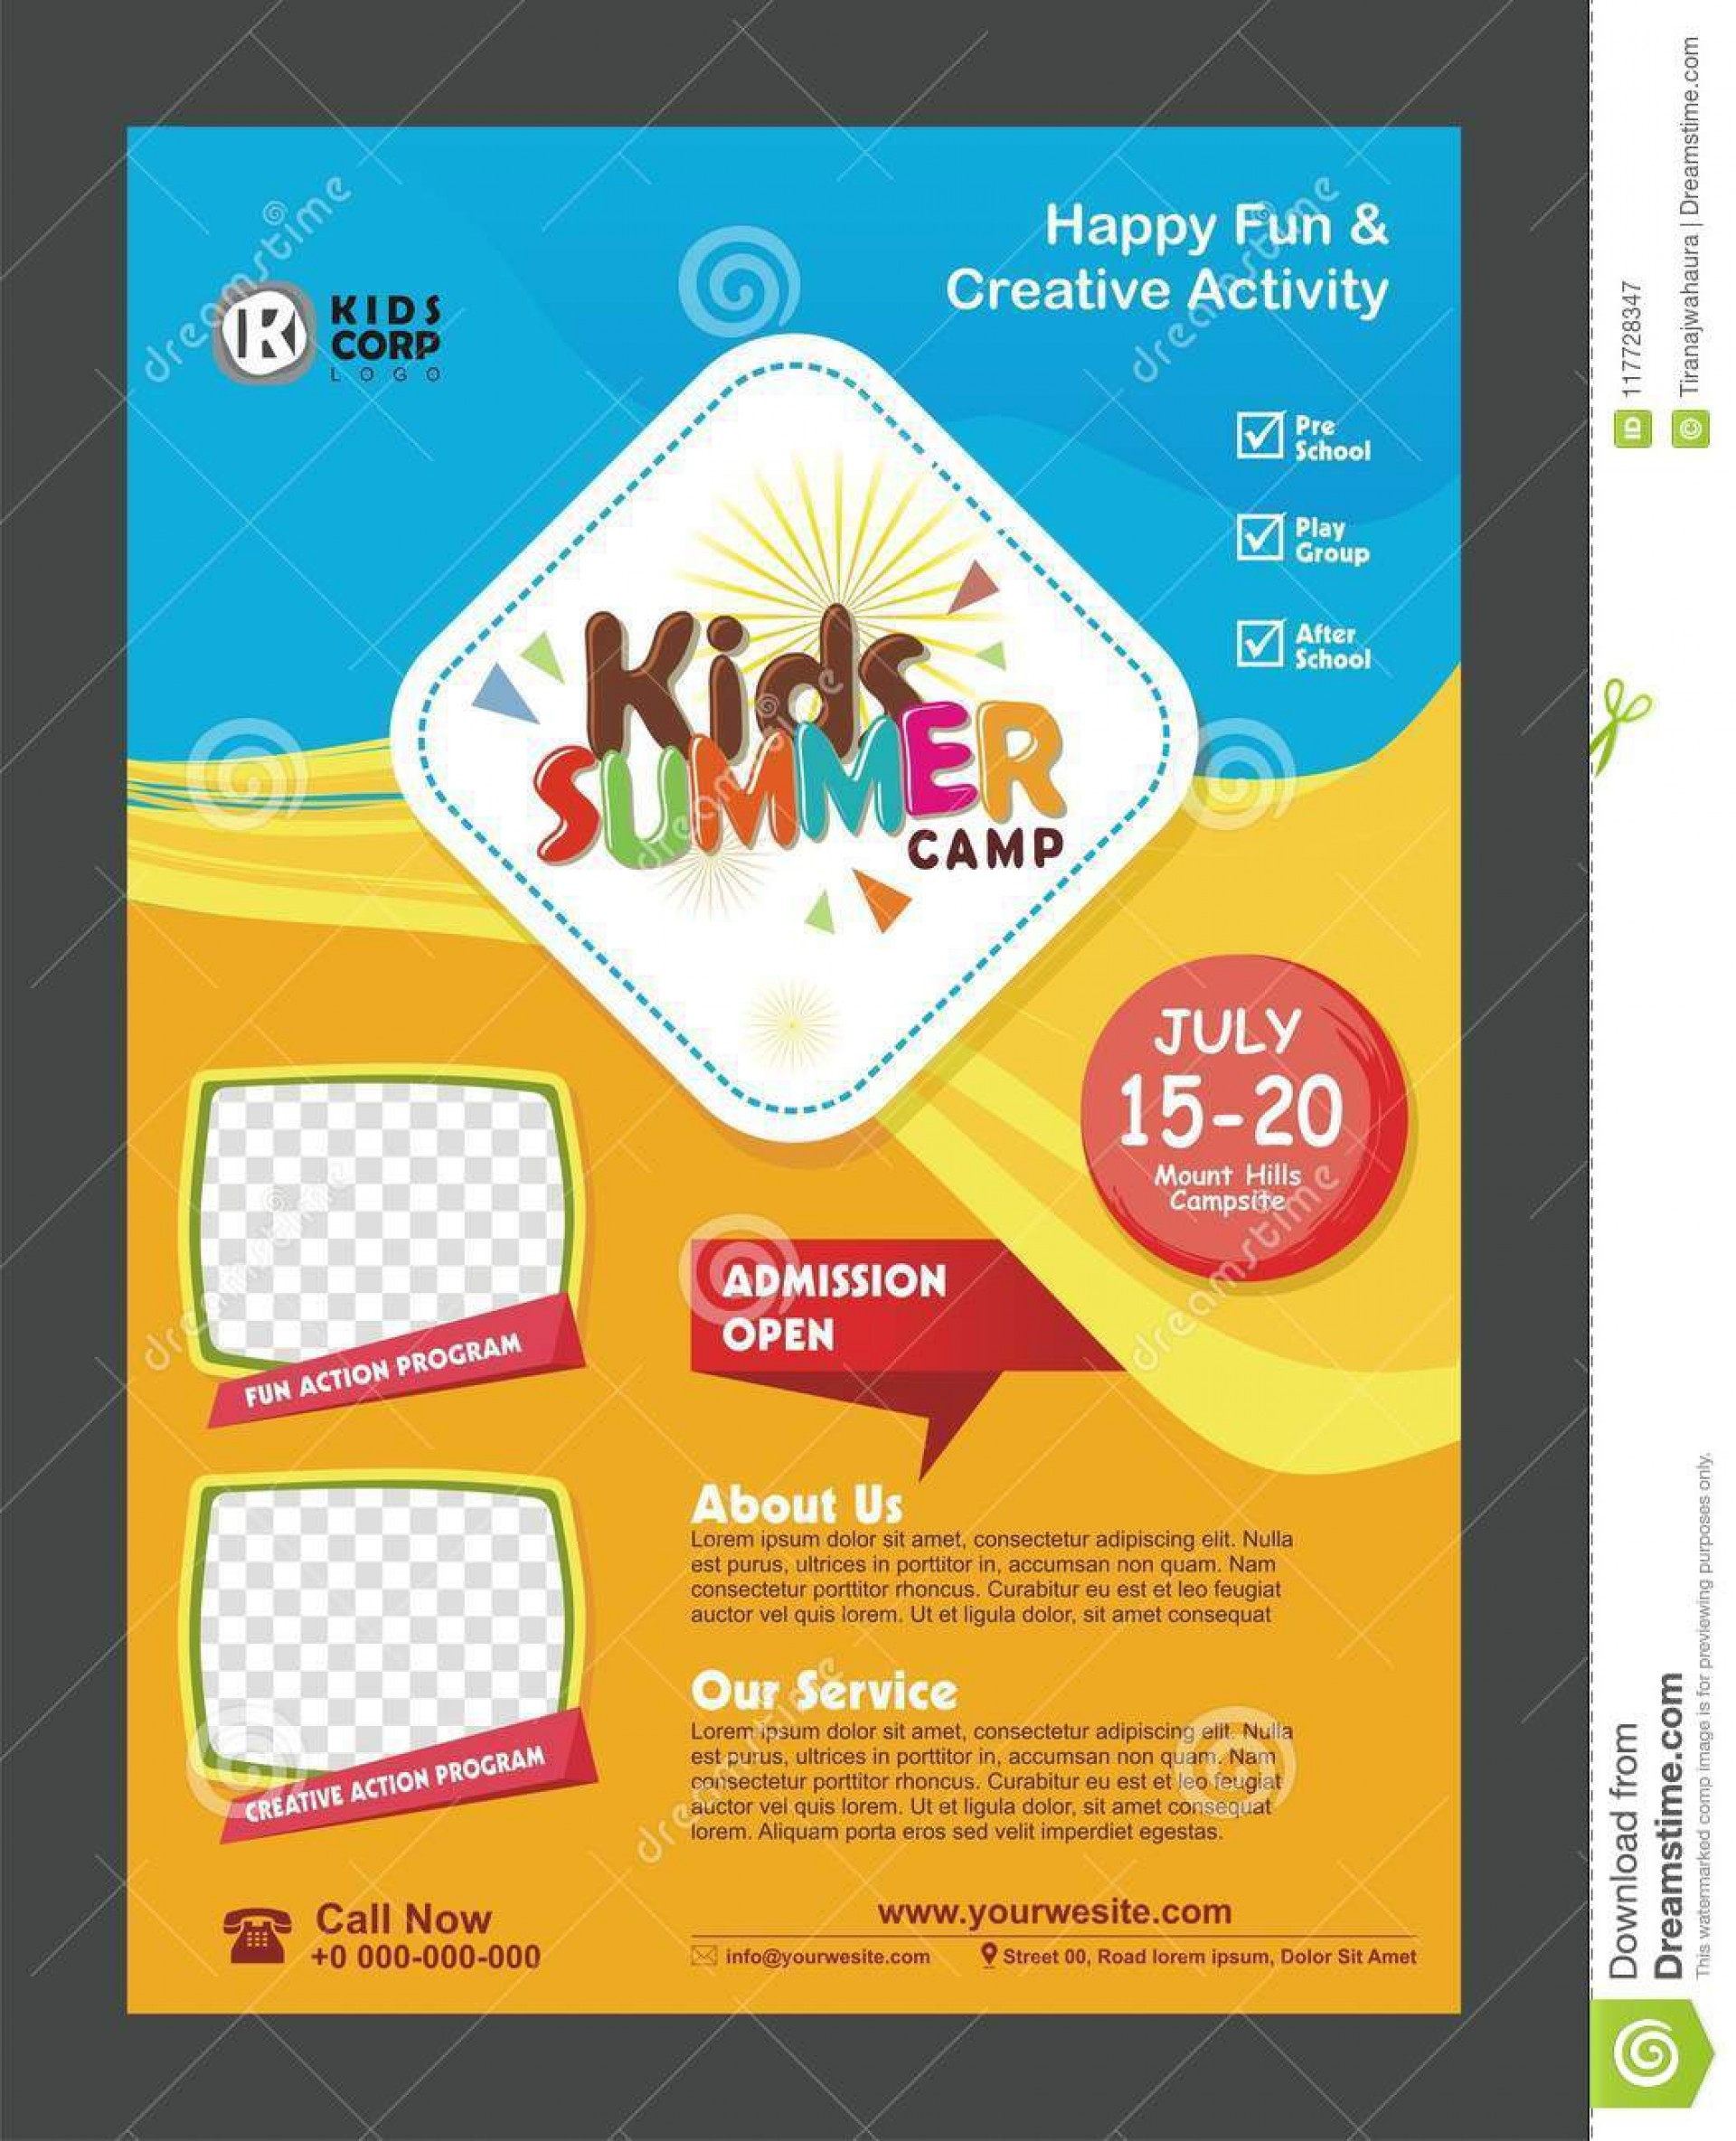 008 Fascinating Free After School Program Flyer Template Picture 1920